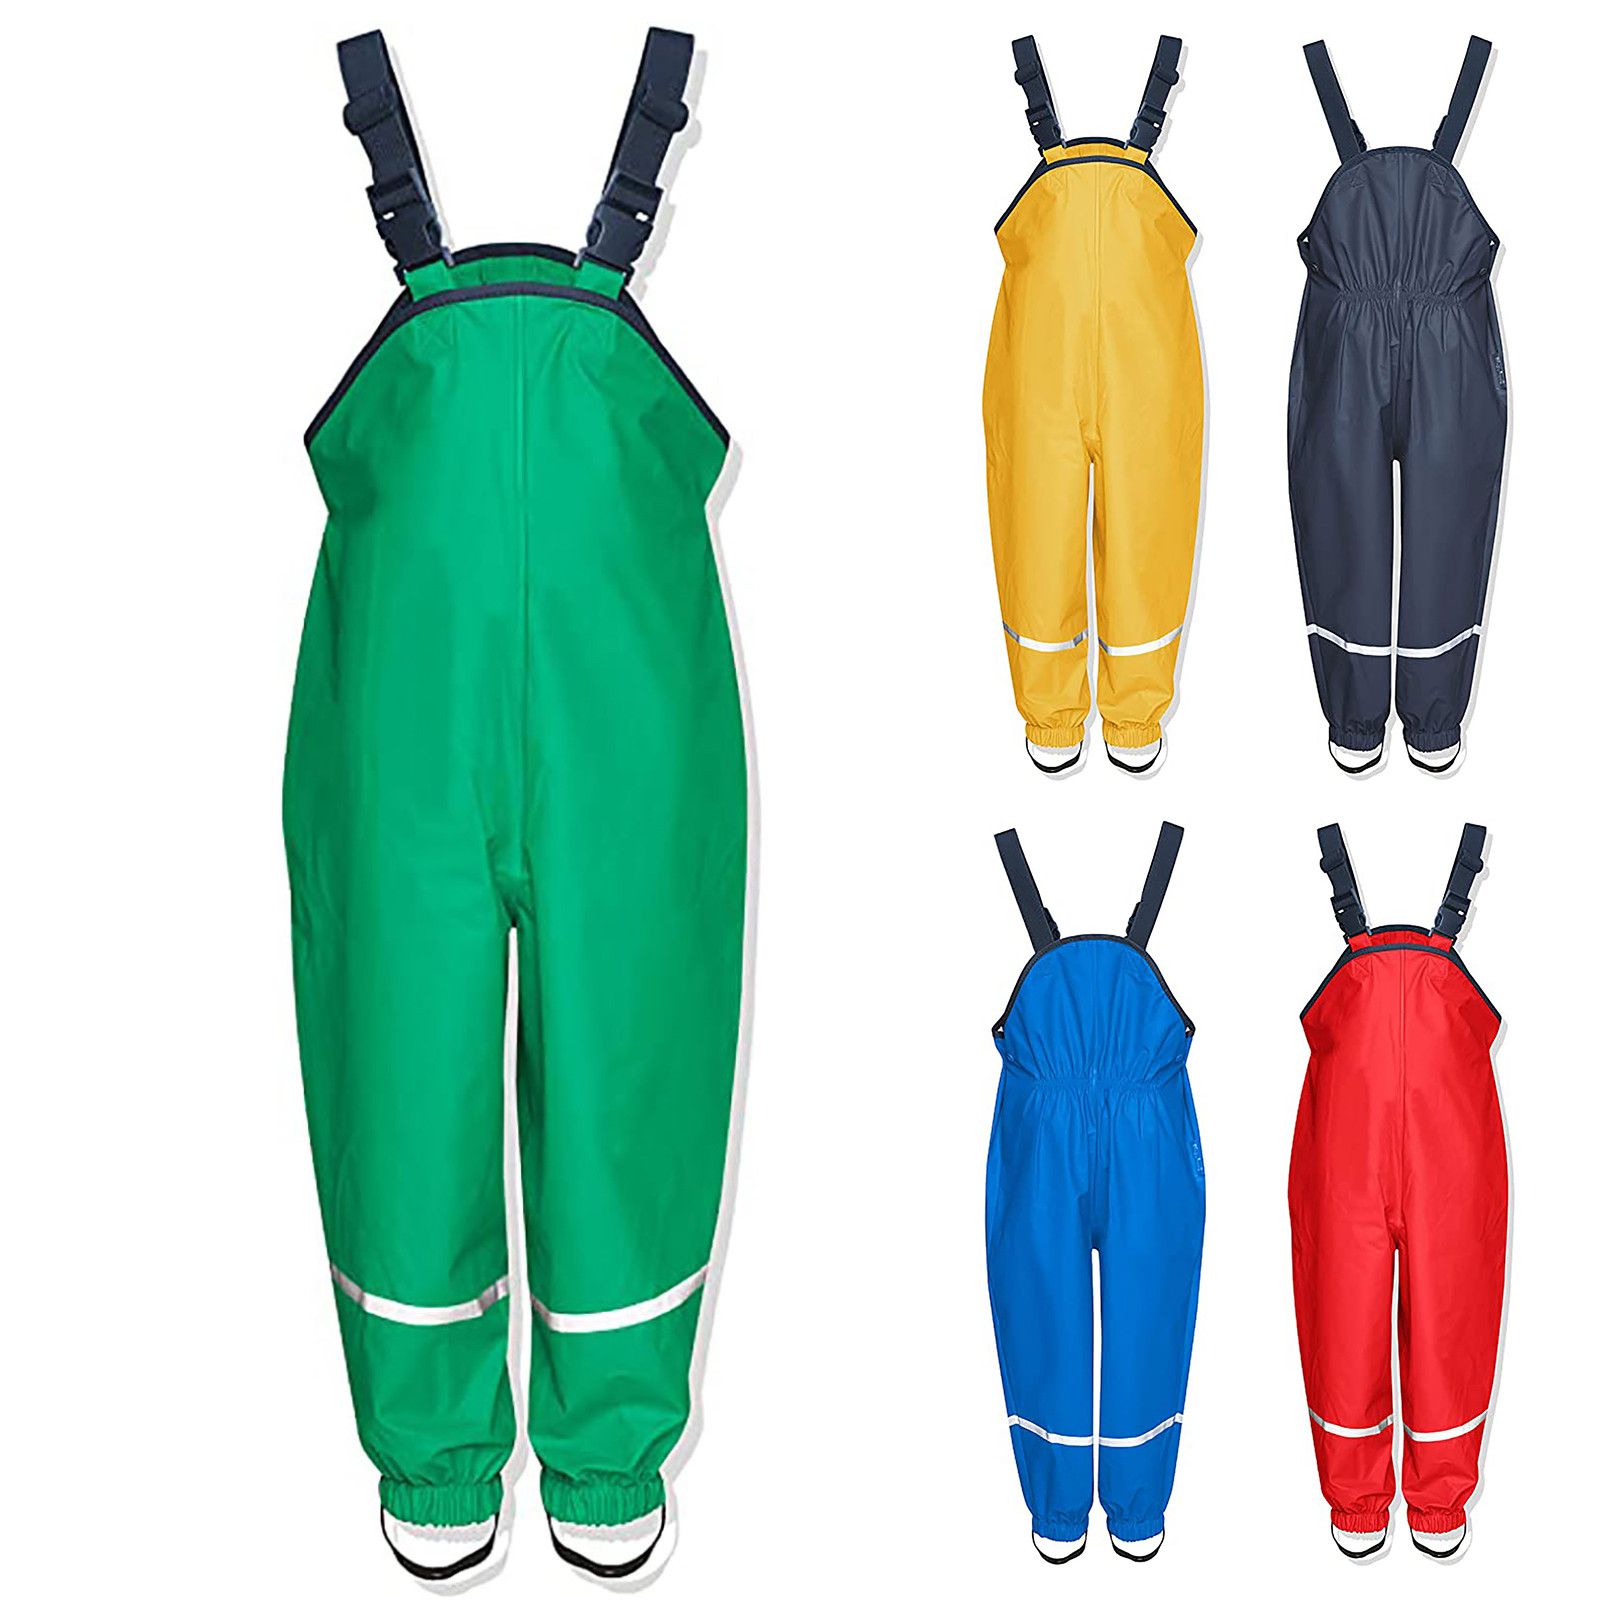 Unisex Children's Rain Dungarees Windproof And Waterproof Mud Trousers Mud Jumpsuit Clothes Thicken Warm Trouser Pants 2021